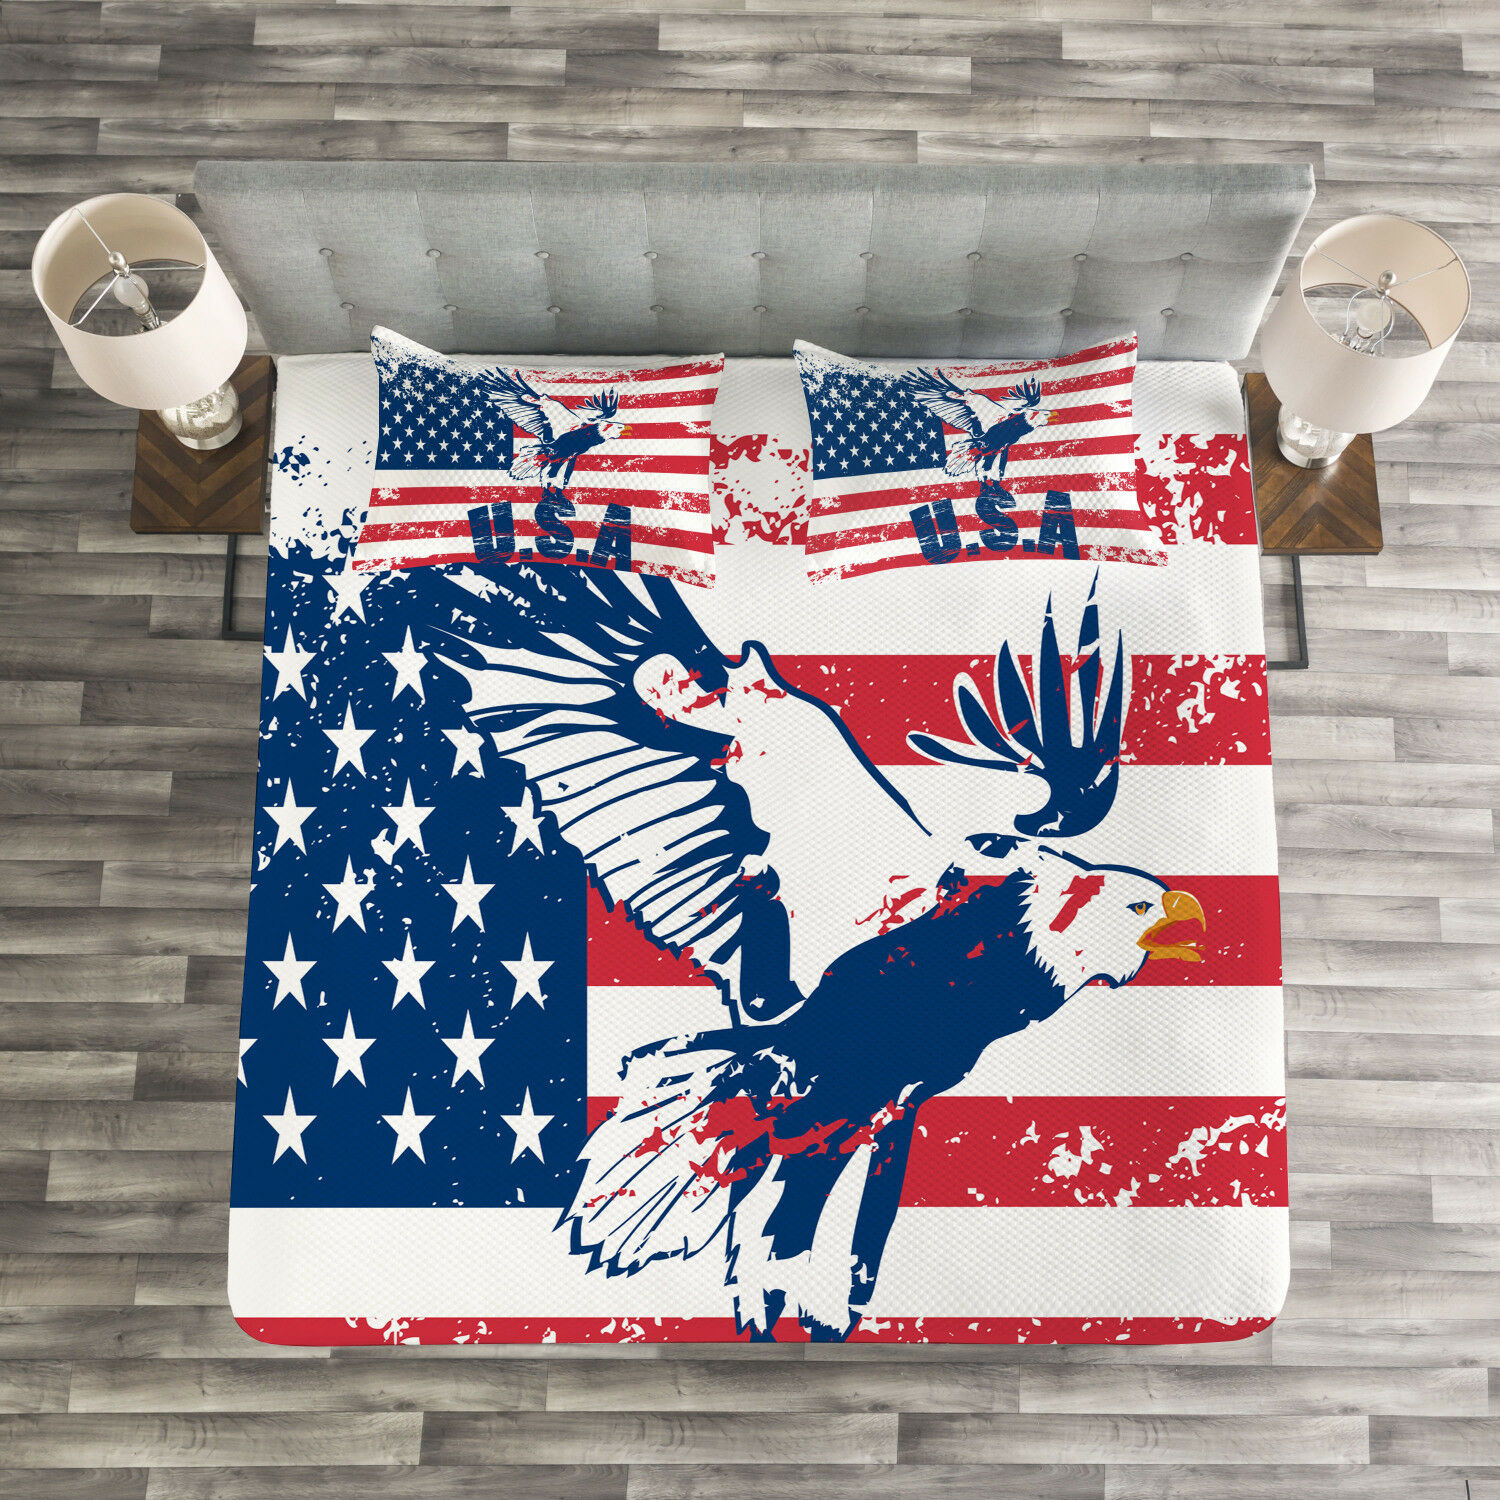 United States Quilted Bedspread & Pillow Shams Set, American Flag Print